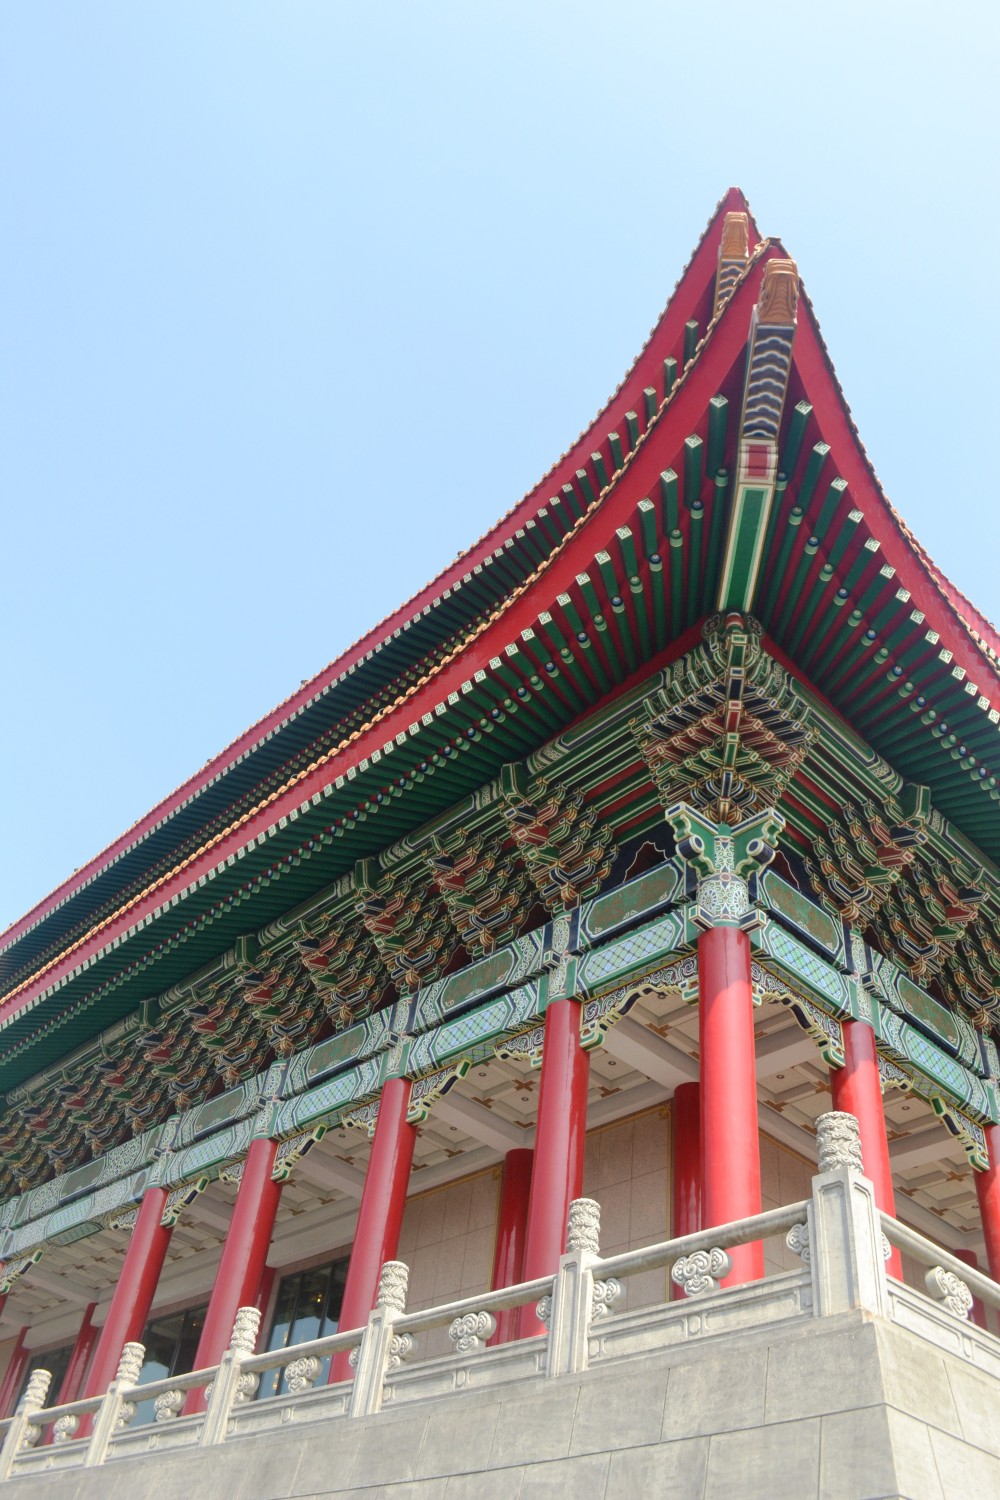 The roof of the Taipei National Theatre located inside the Chang Kai Shek Memorial Hall